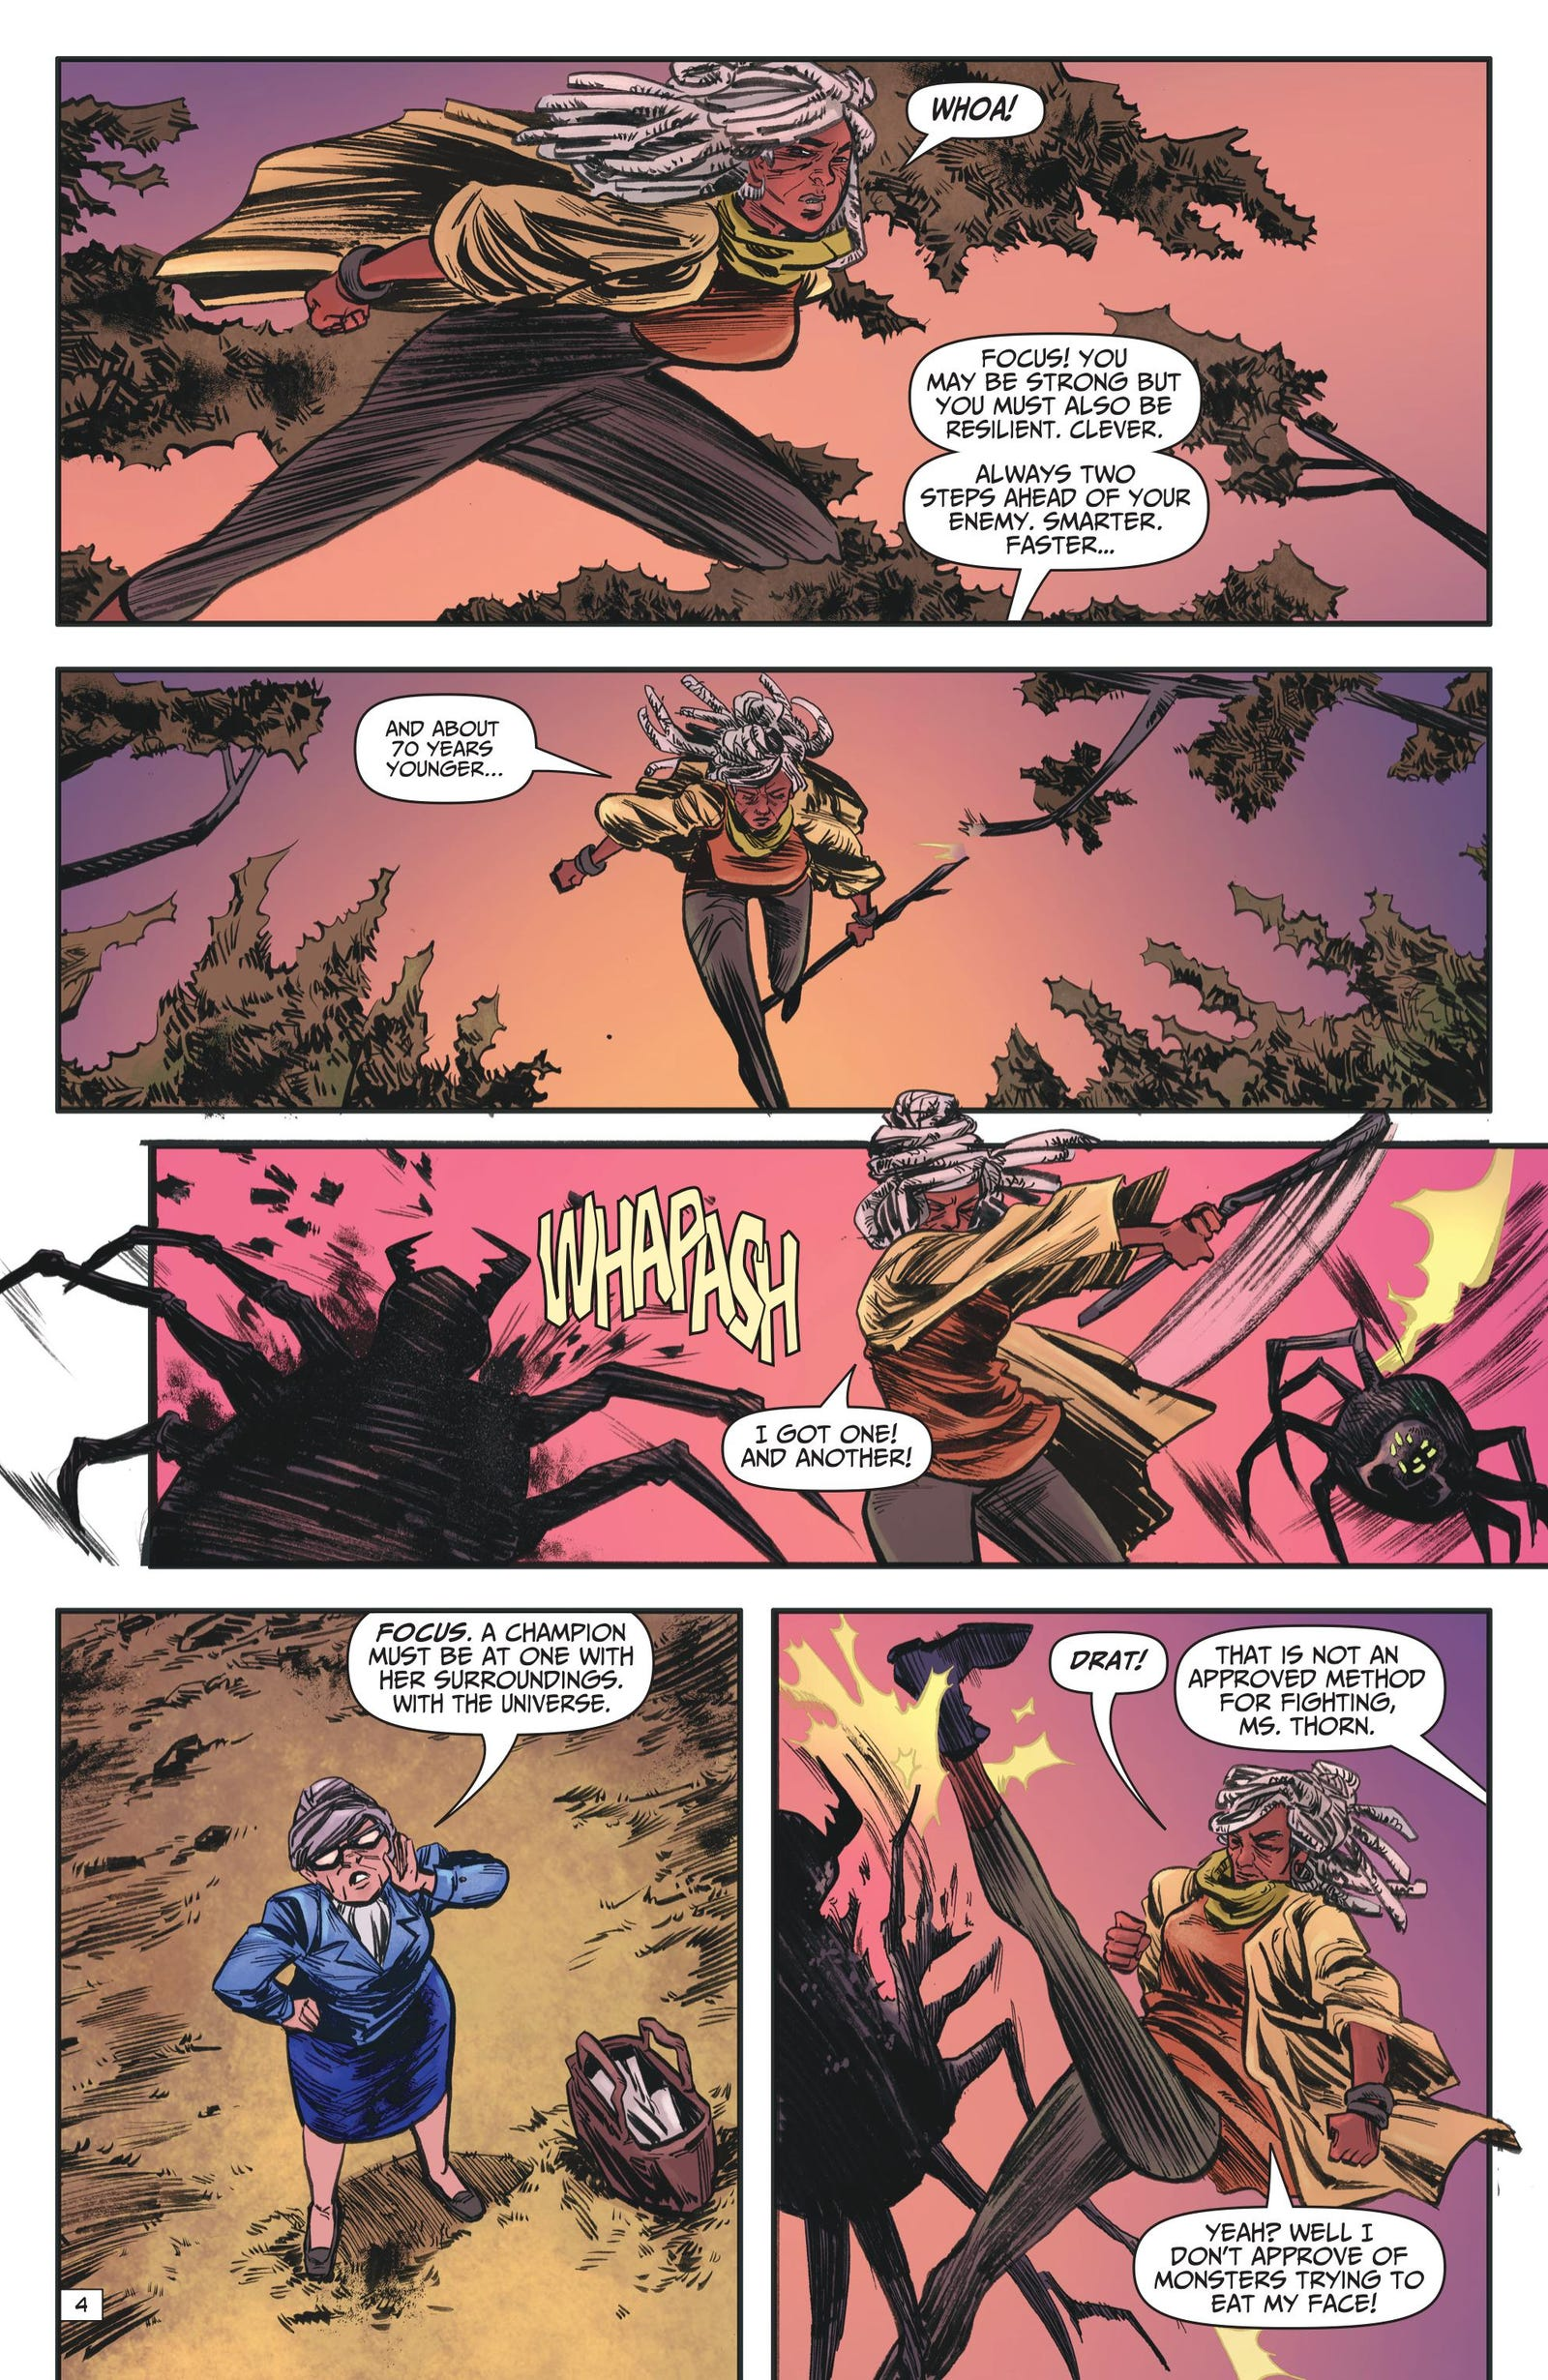 Our exclusive look inside Ash & Thorn's first issue!